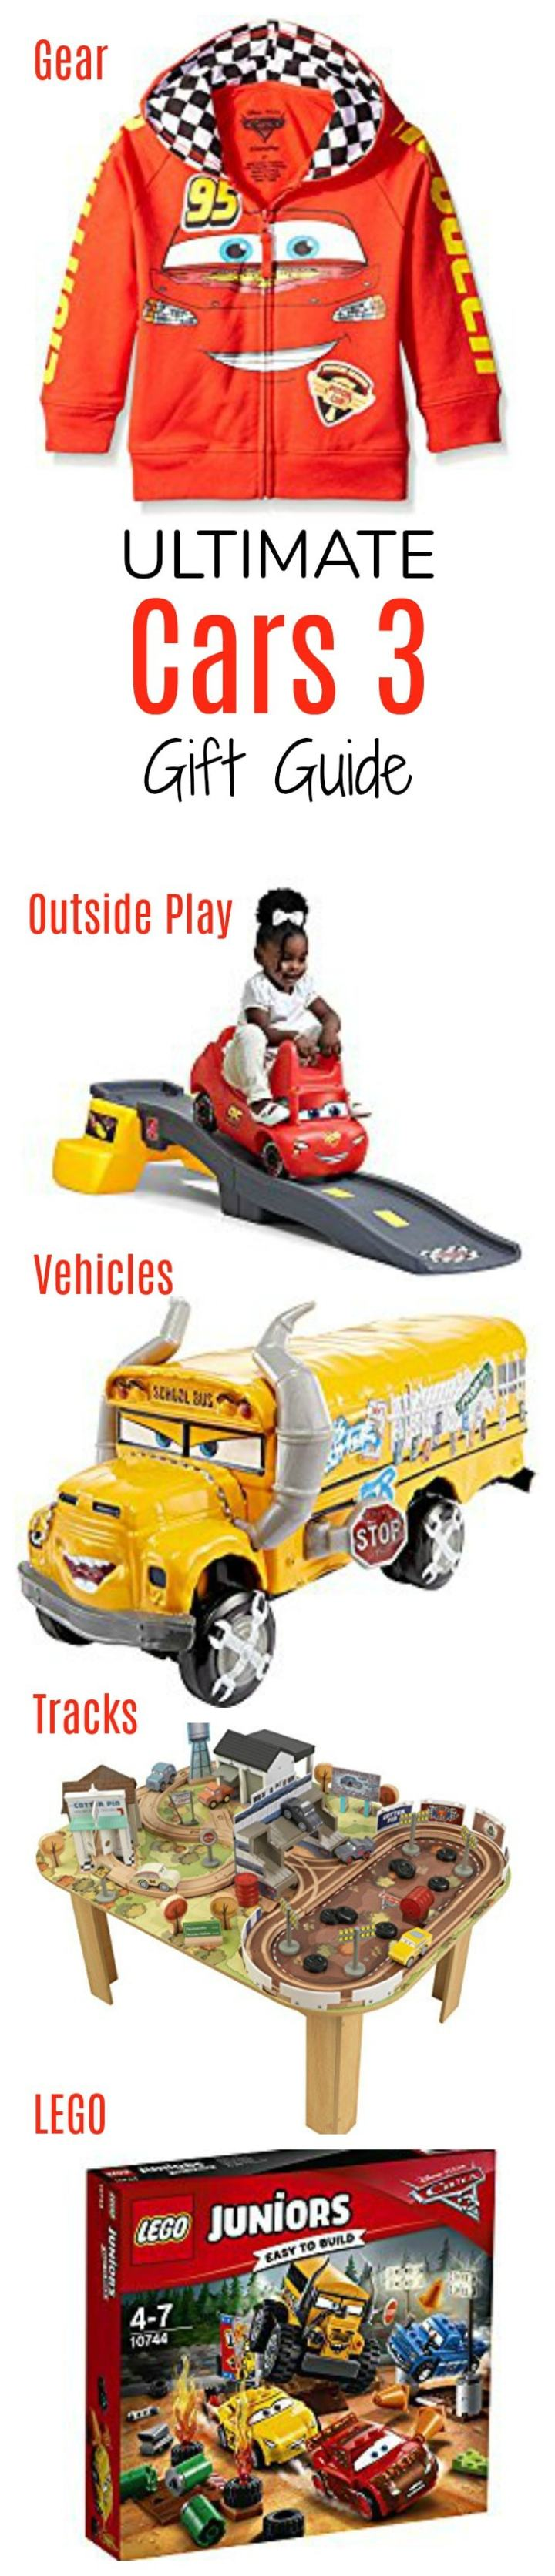 The ultimate Cars 3 gift guide for your little Cars 3 fan! Features building toys, lego sets, vehicles, bedroom gear, outdoor toys and more!